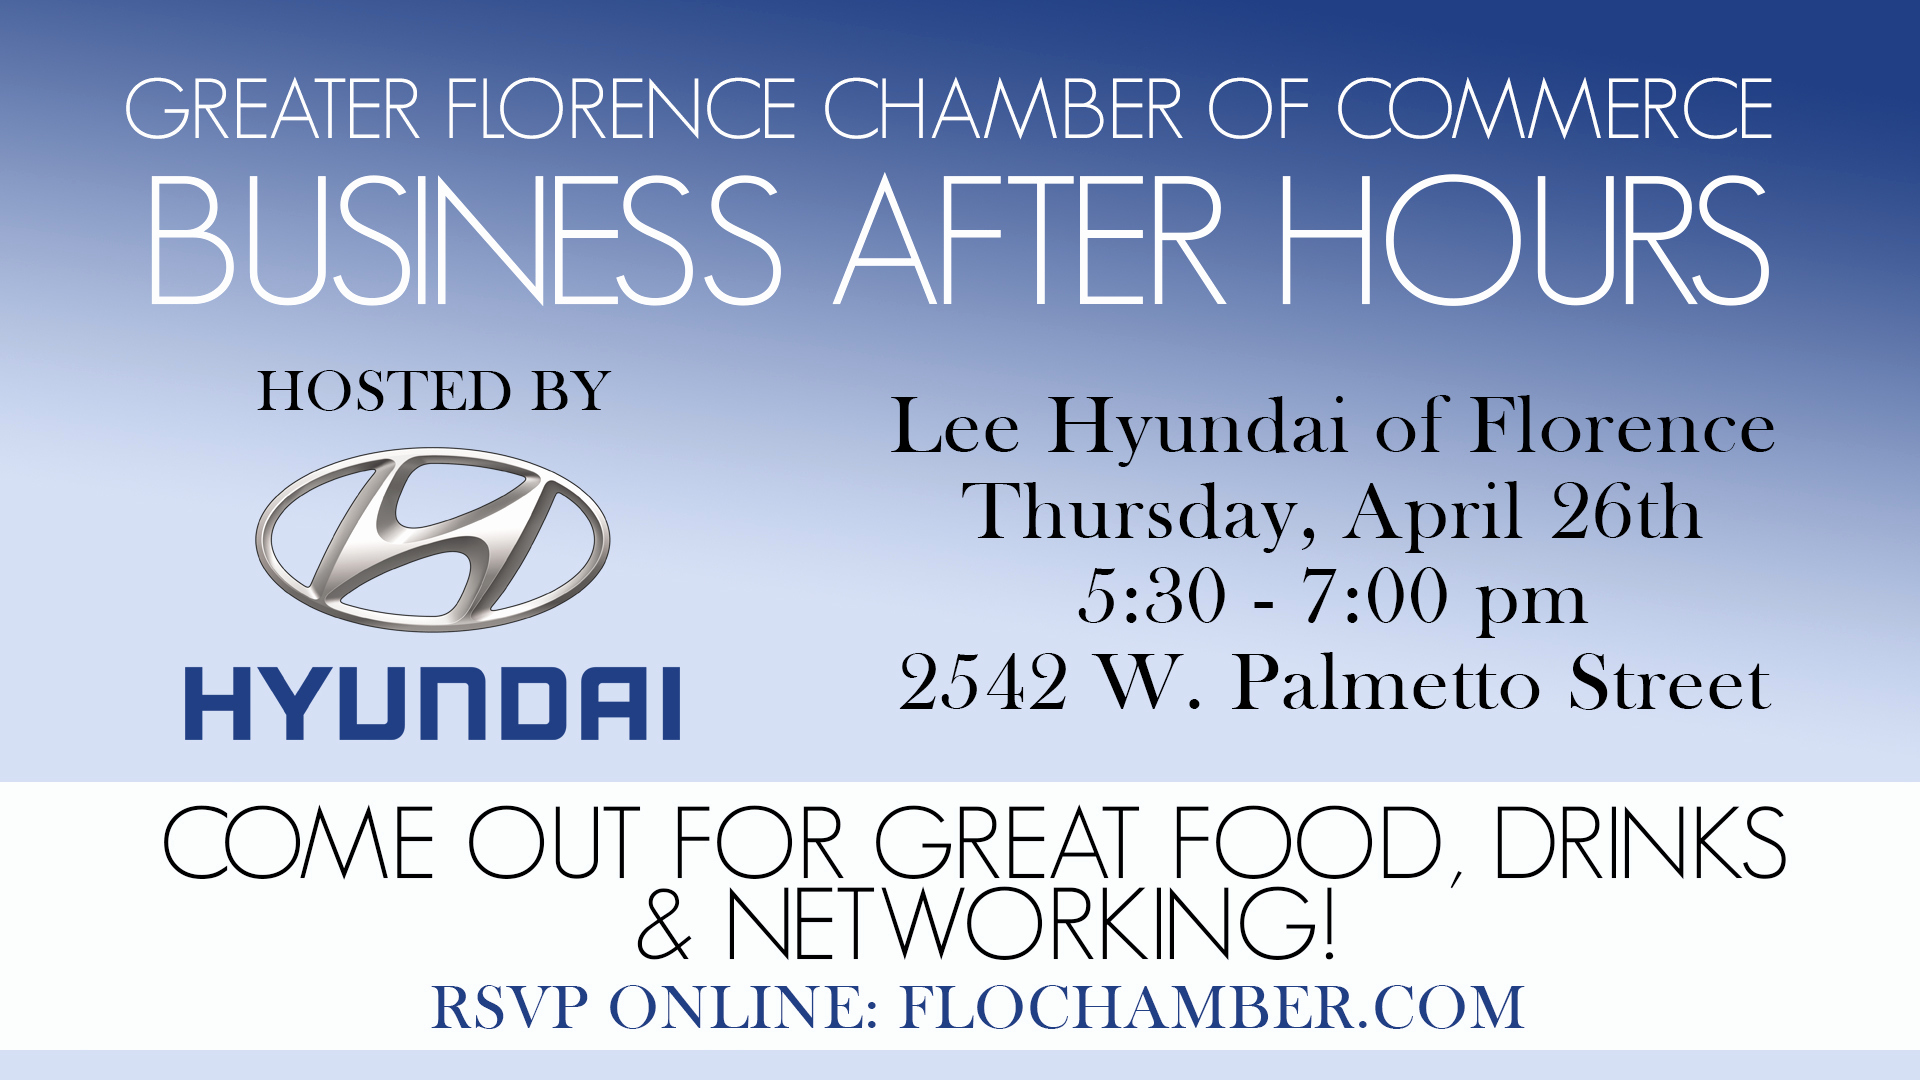 Business after Hours Invitation Inspirational Business after Hours – Lee Hyundai Of Florence – Greater